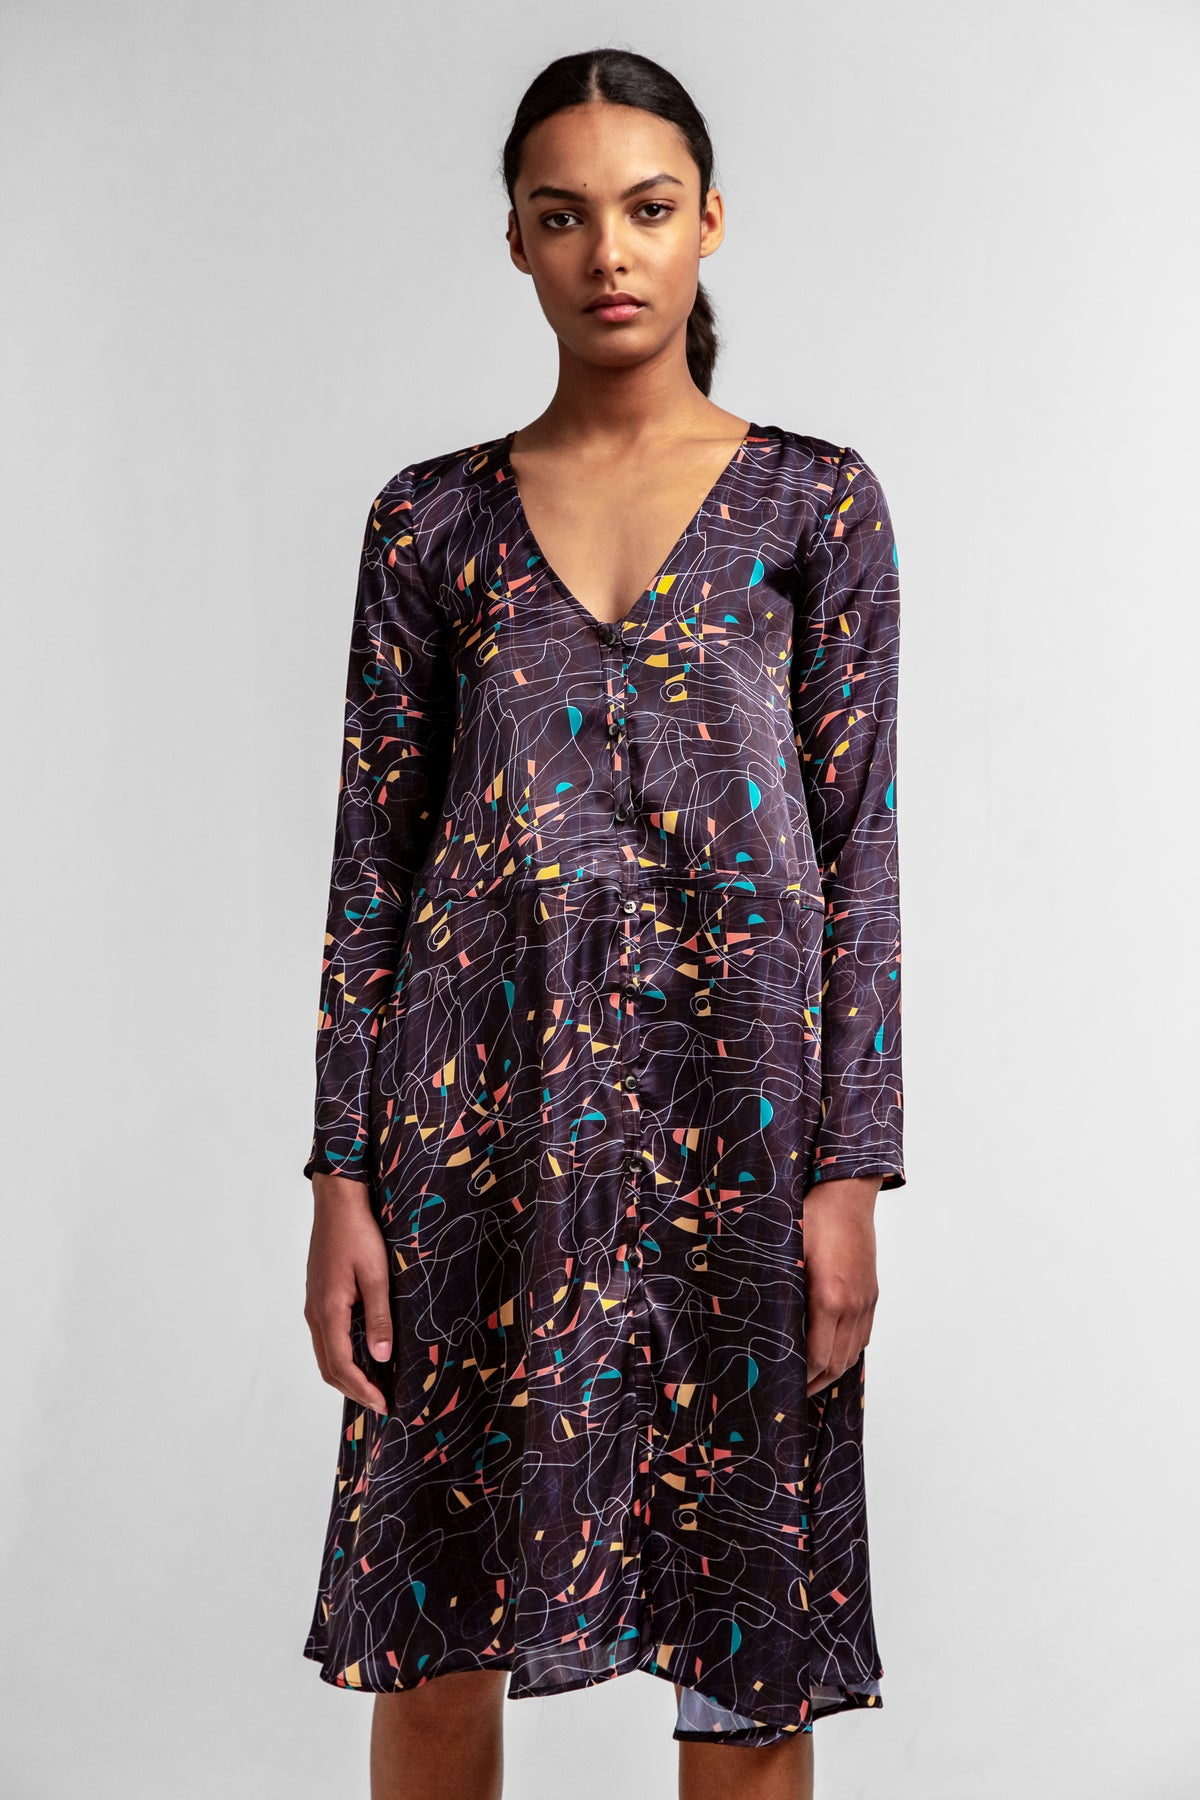 Java dress in reflections print